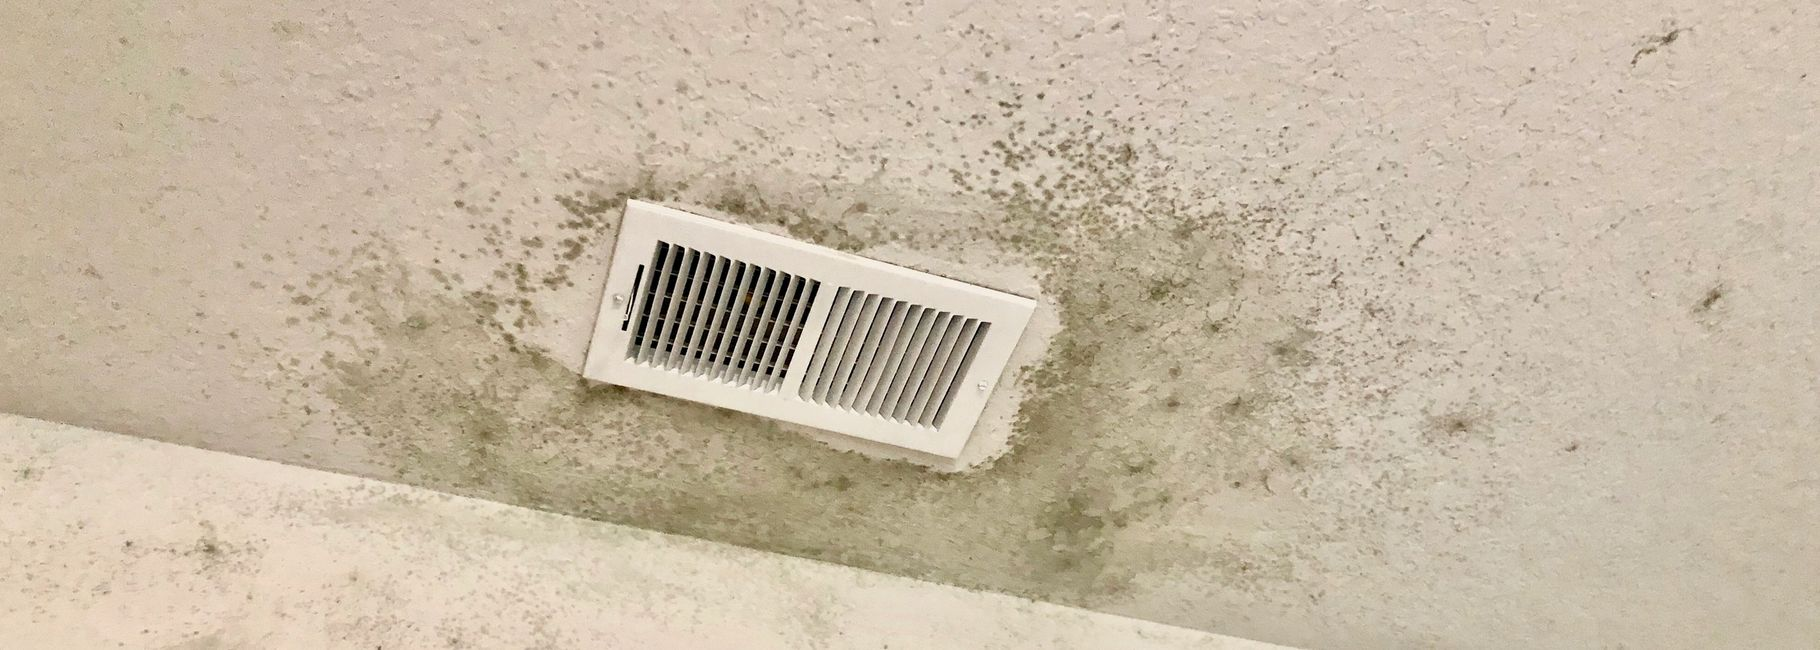 air quality testing, iaq, mold testing, black mold, how do i tell if i have mold